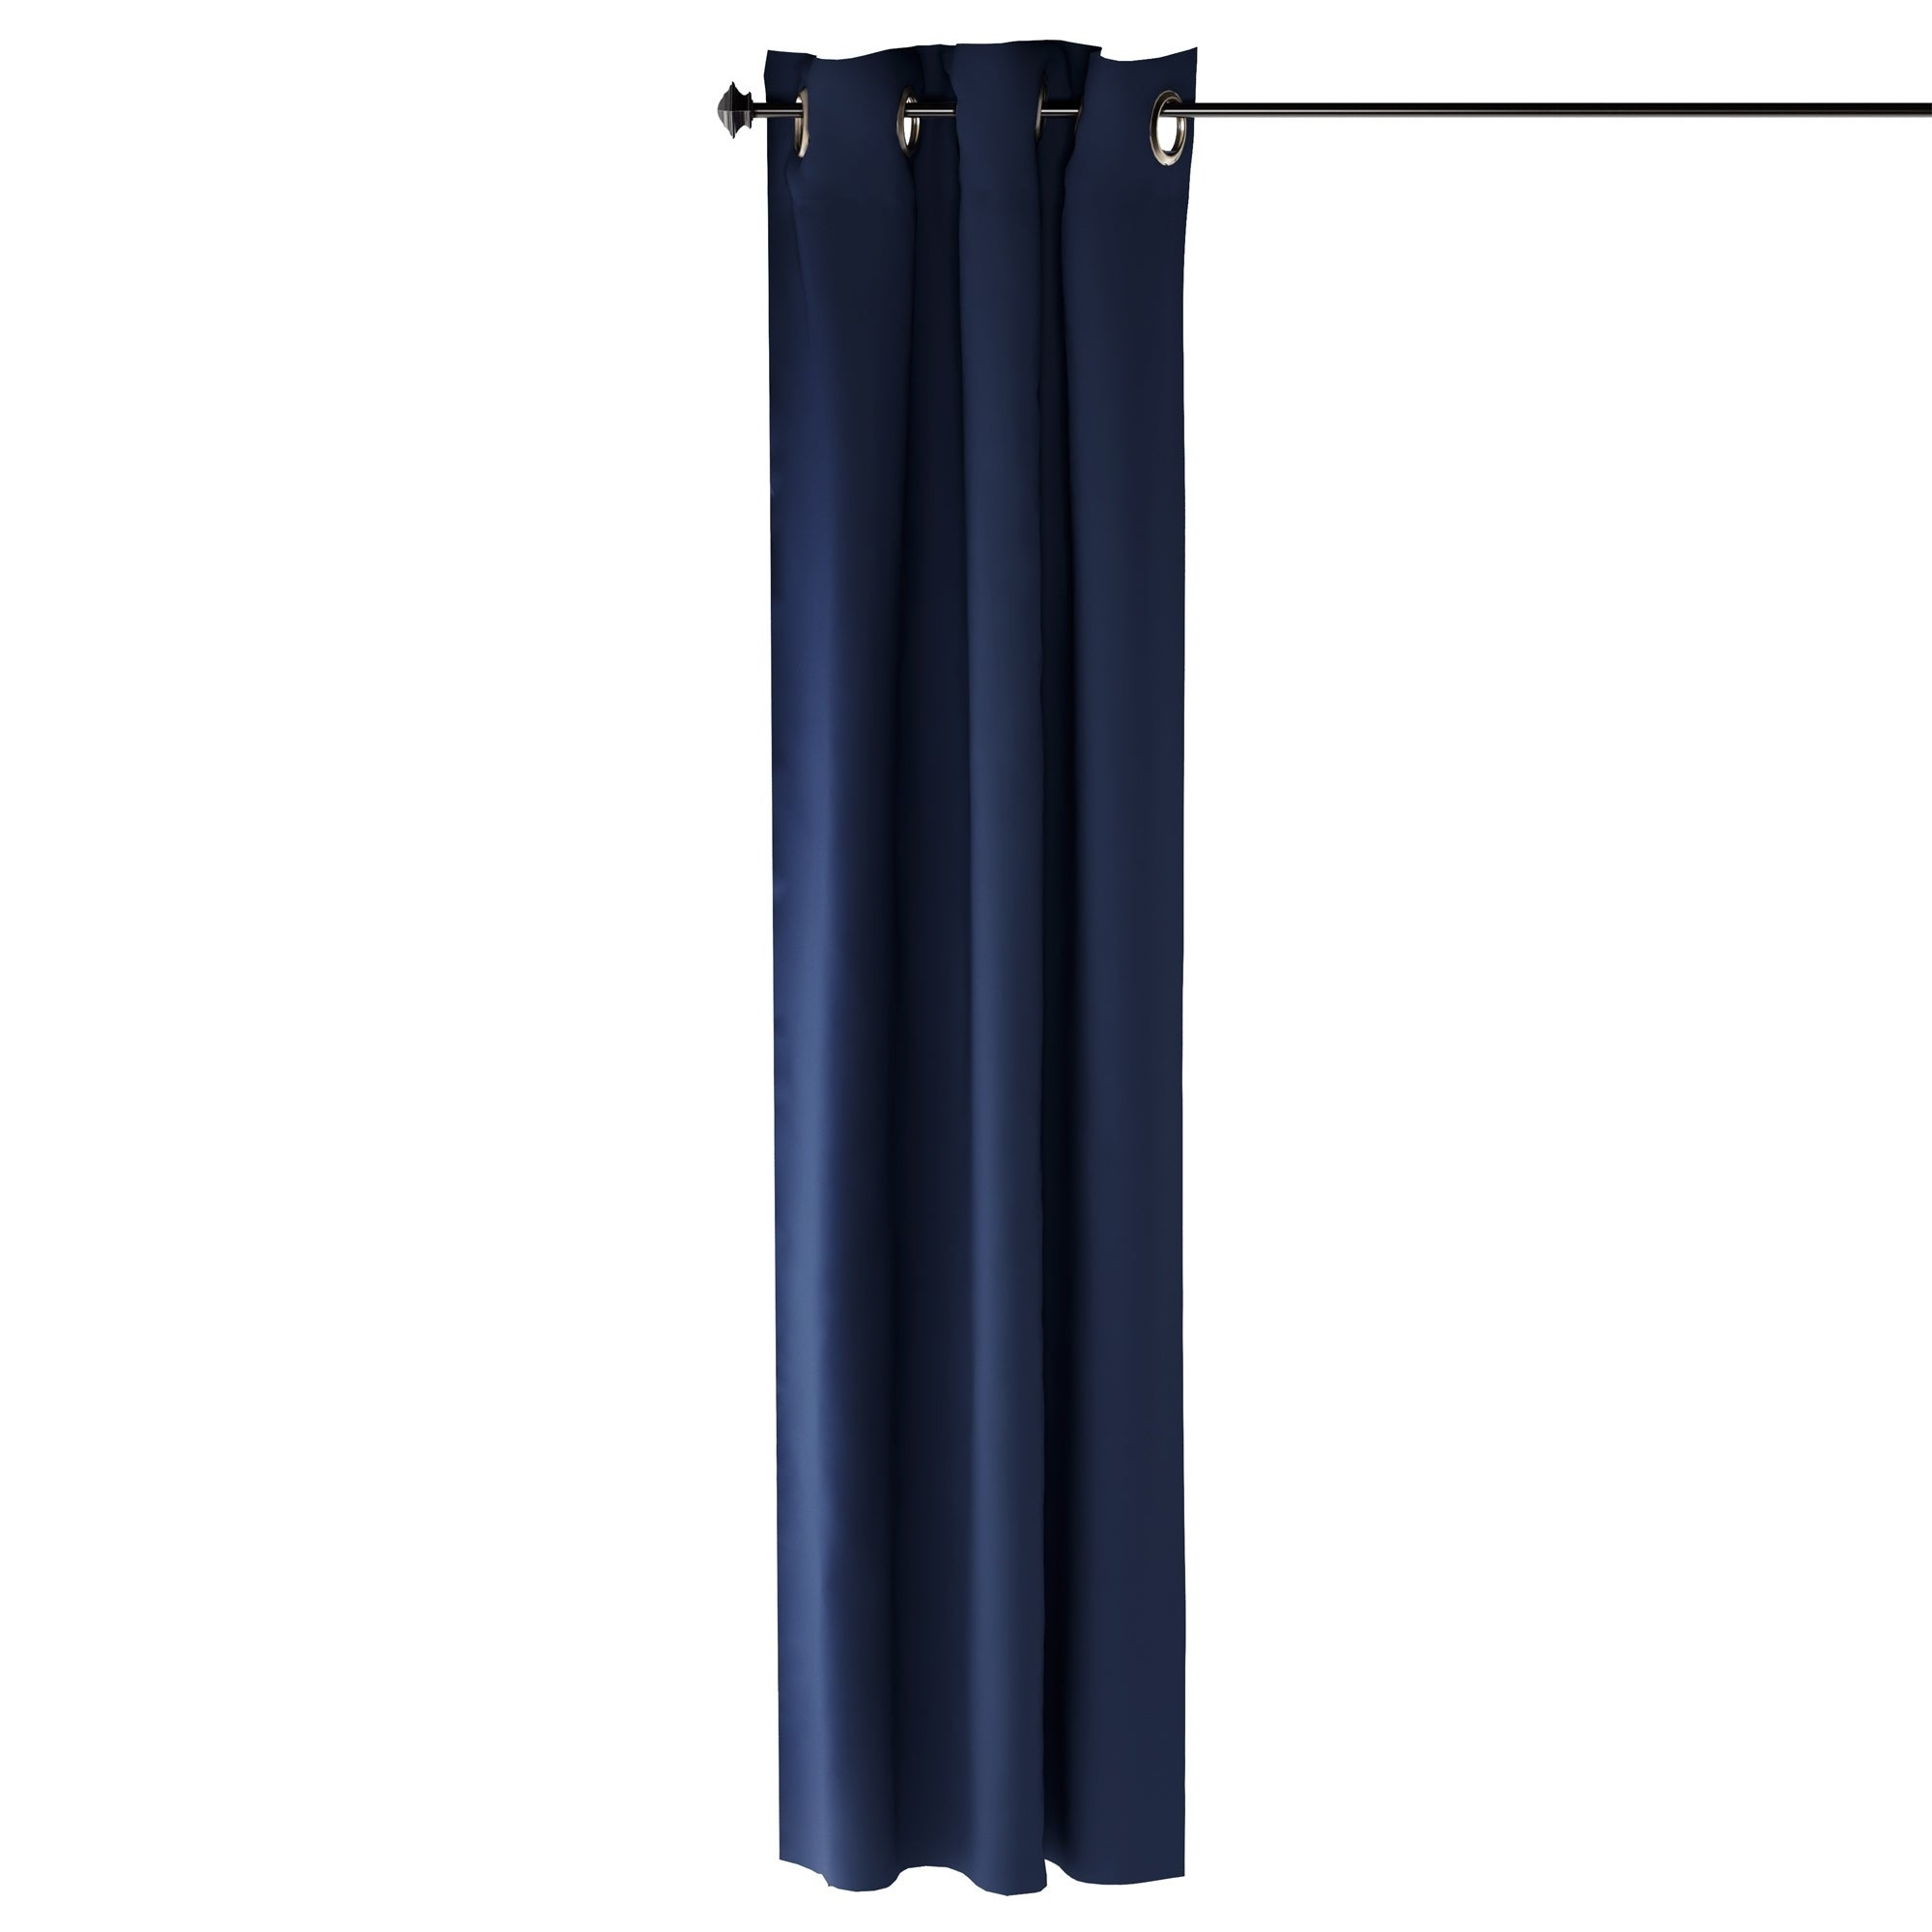 Furinno Collins Blackout Curtain 42x84 in. 2 Panels (Blue)